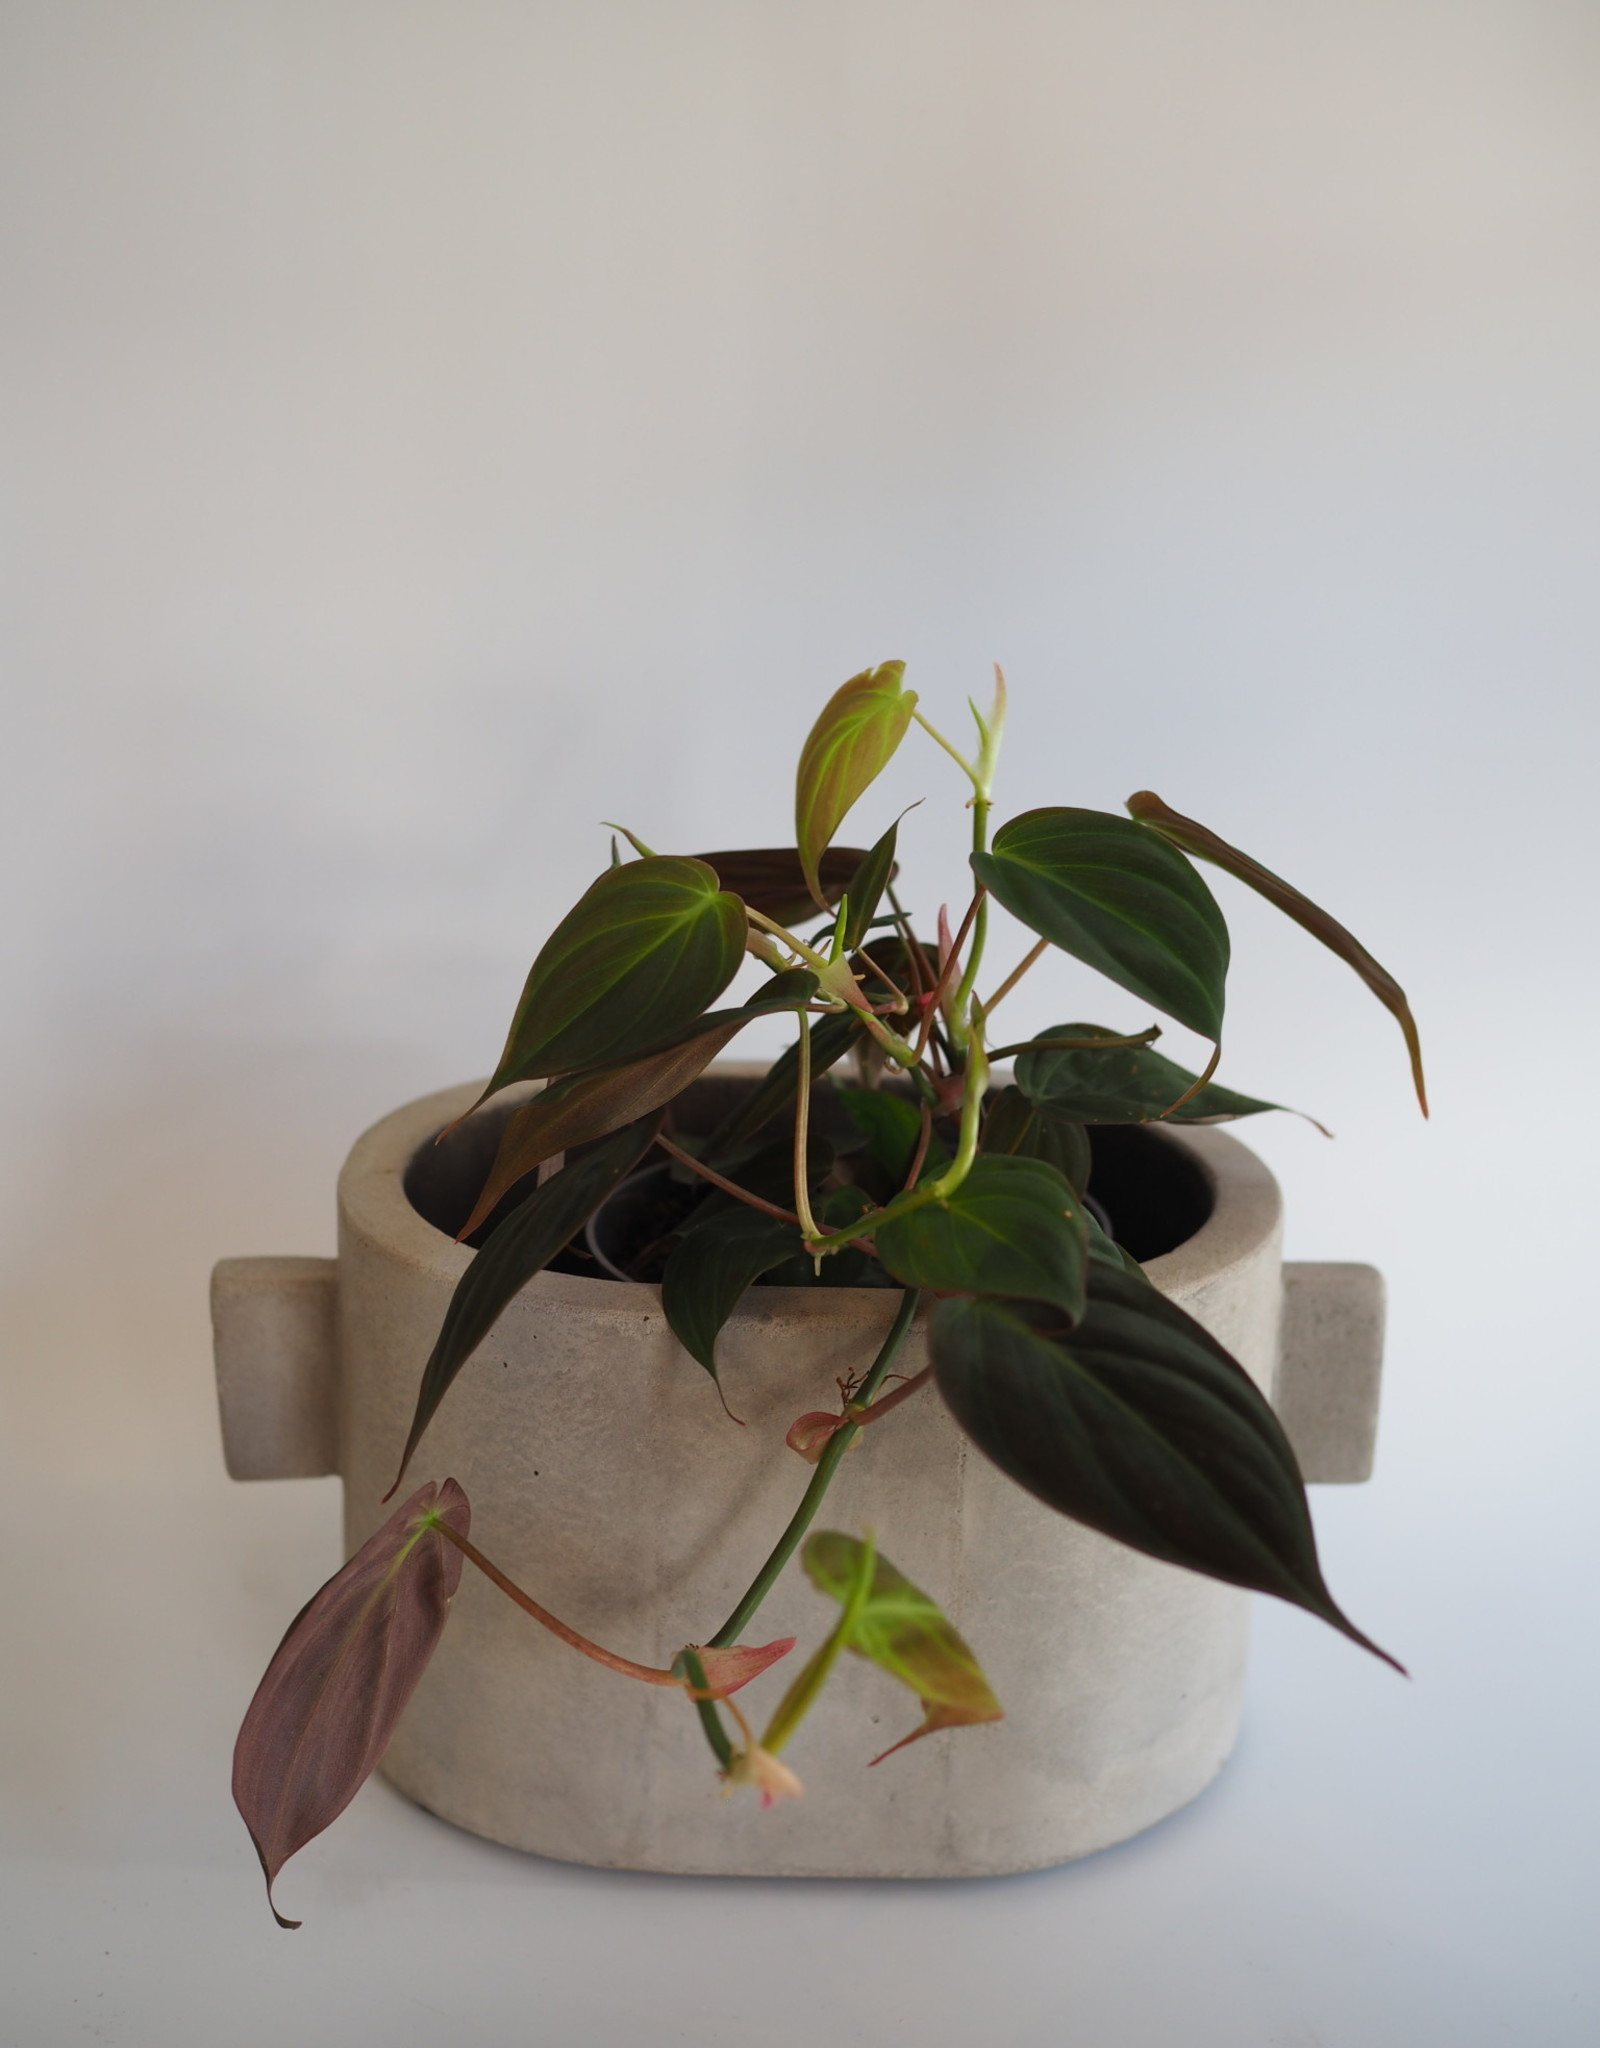 GRUUN Philodendron scandens 'Micans' ∅12 h25